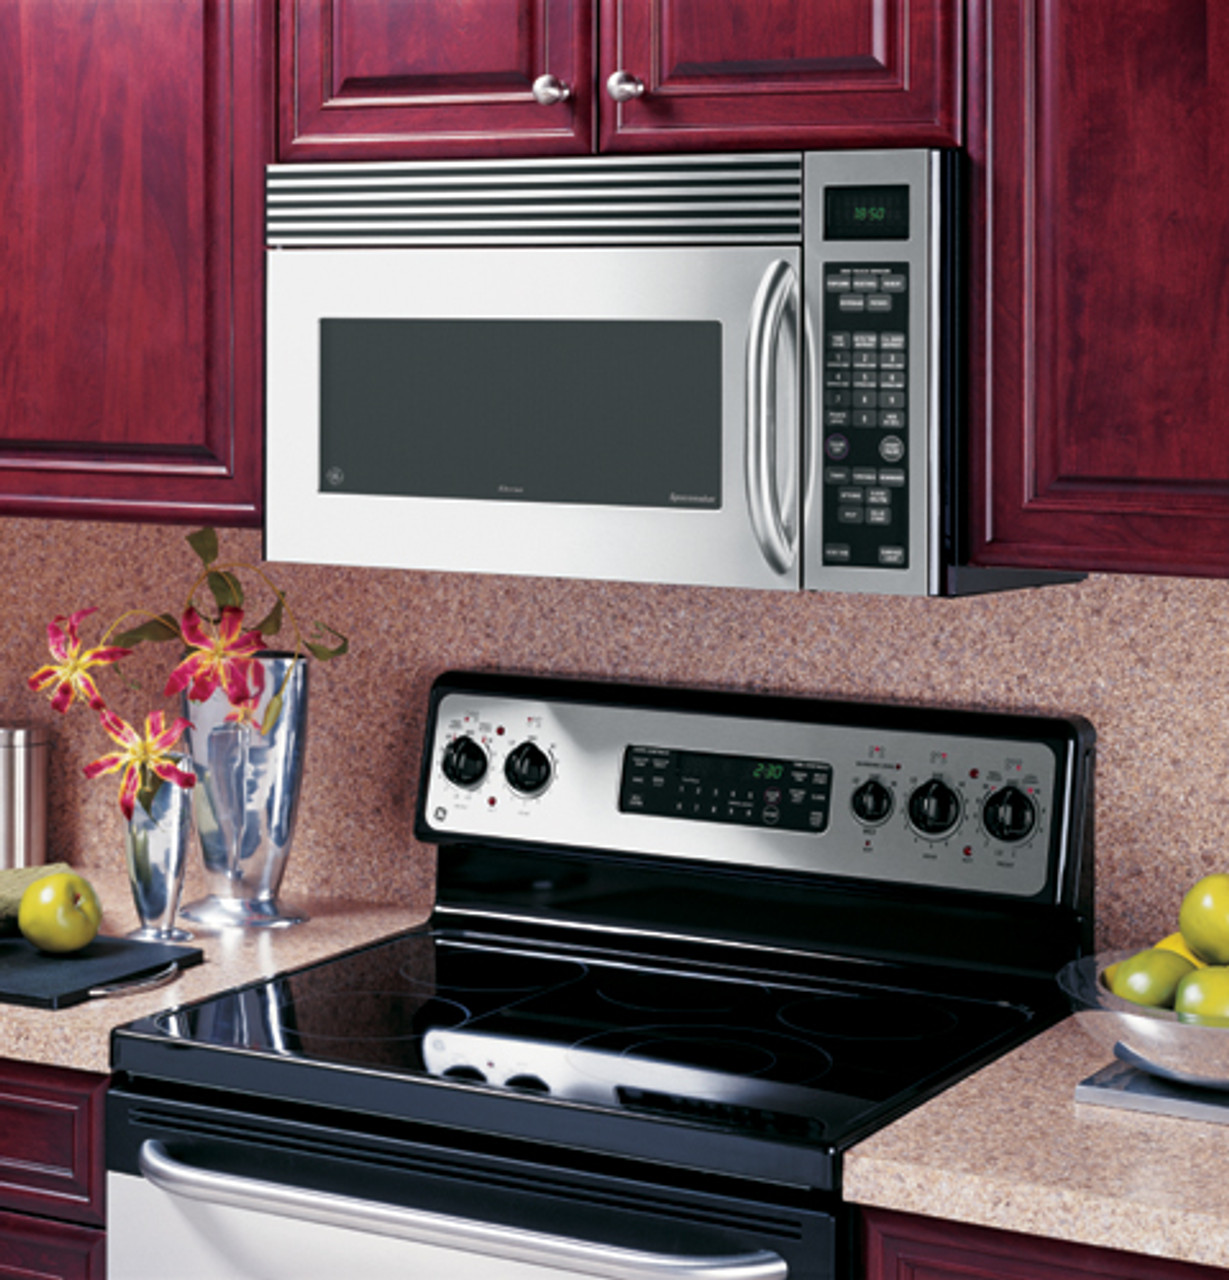 ge 1 8 cu ft over the range microwave oven emo4000jss